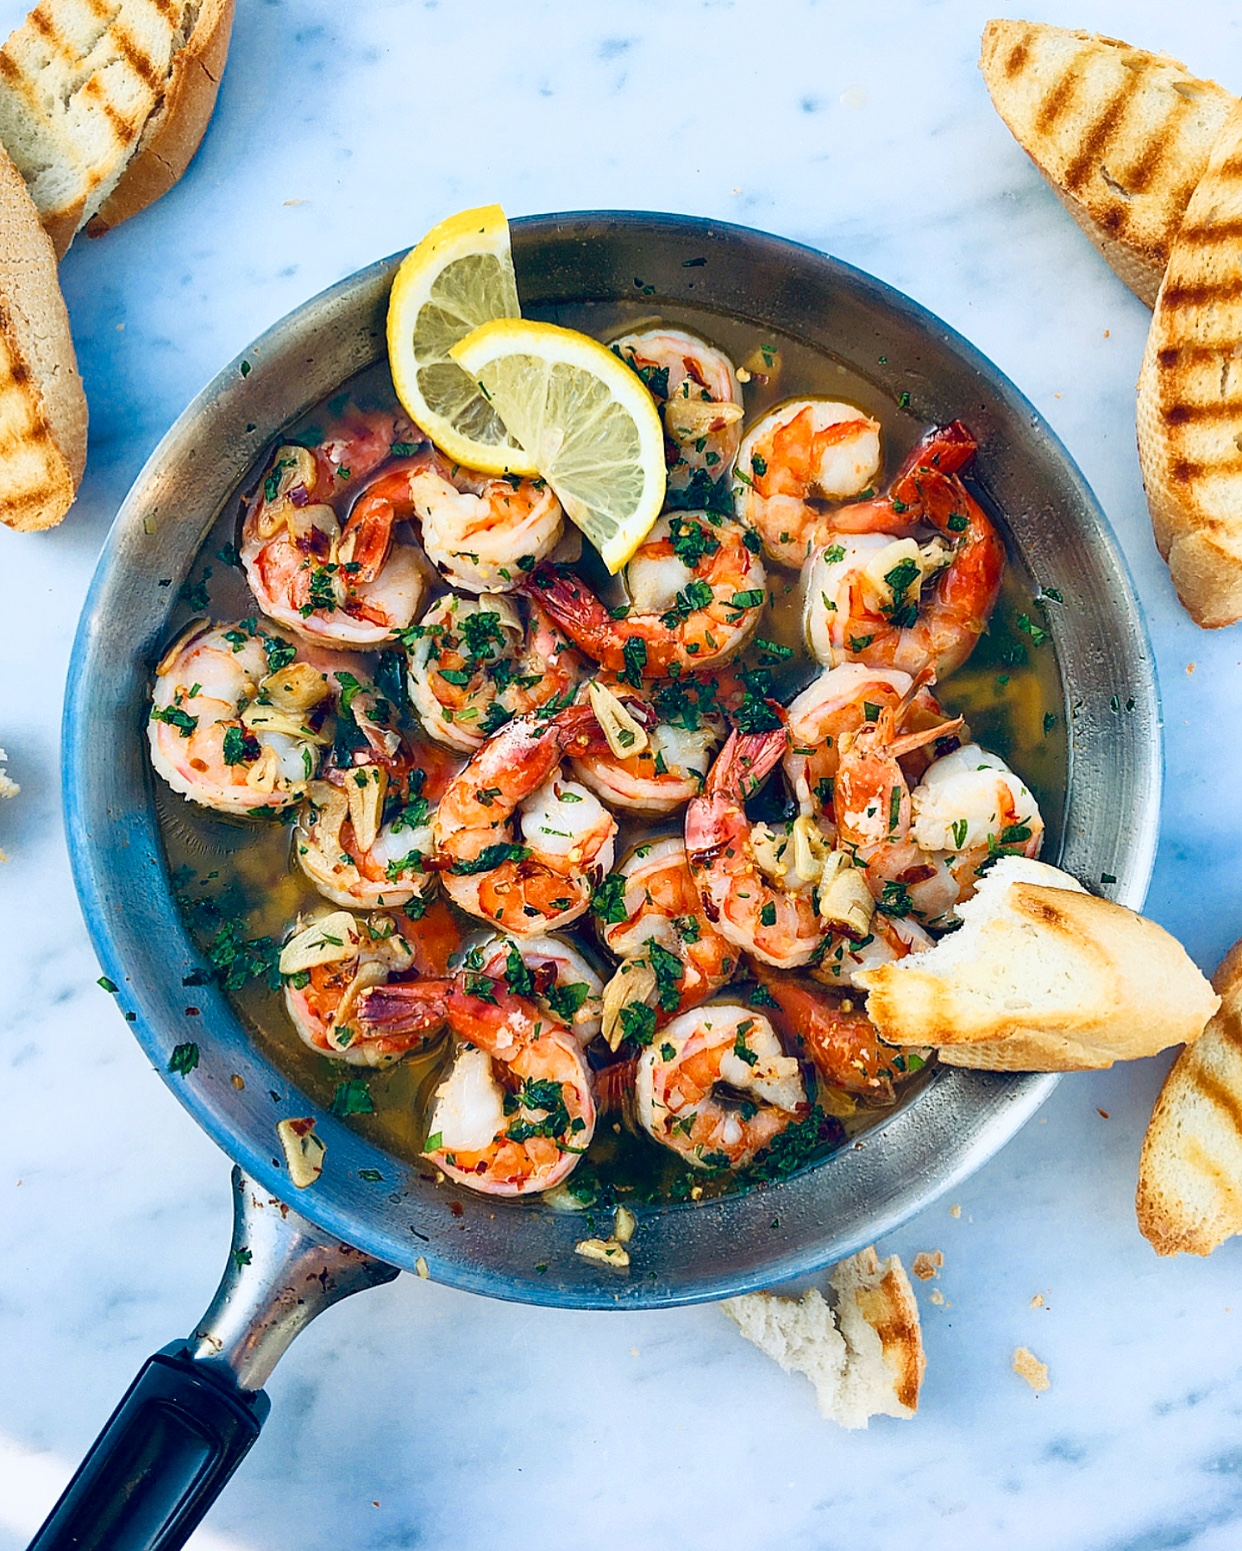 Gambas Al Ajillo Shrimp In Garlic Oil The Spiced Chickpea